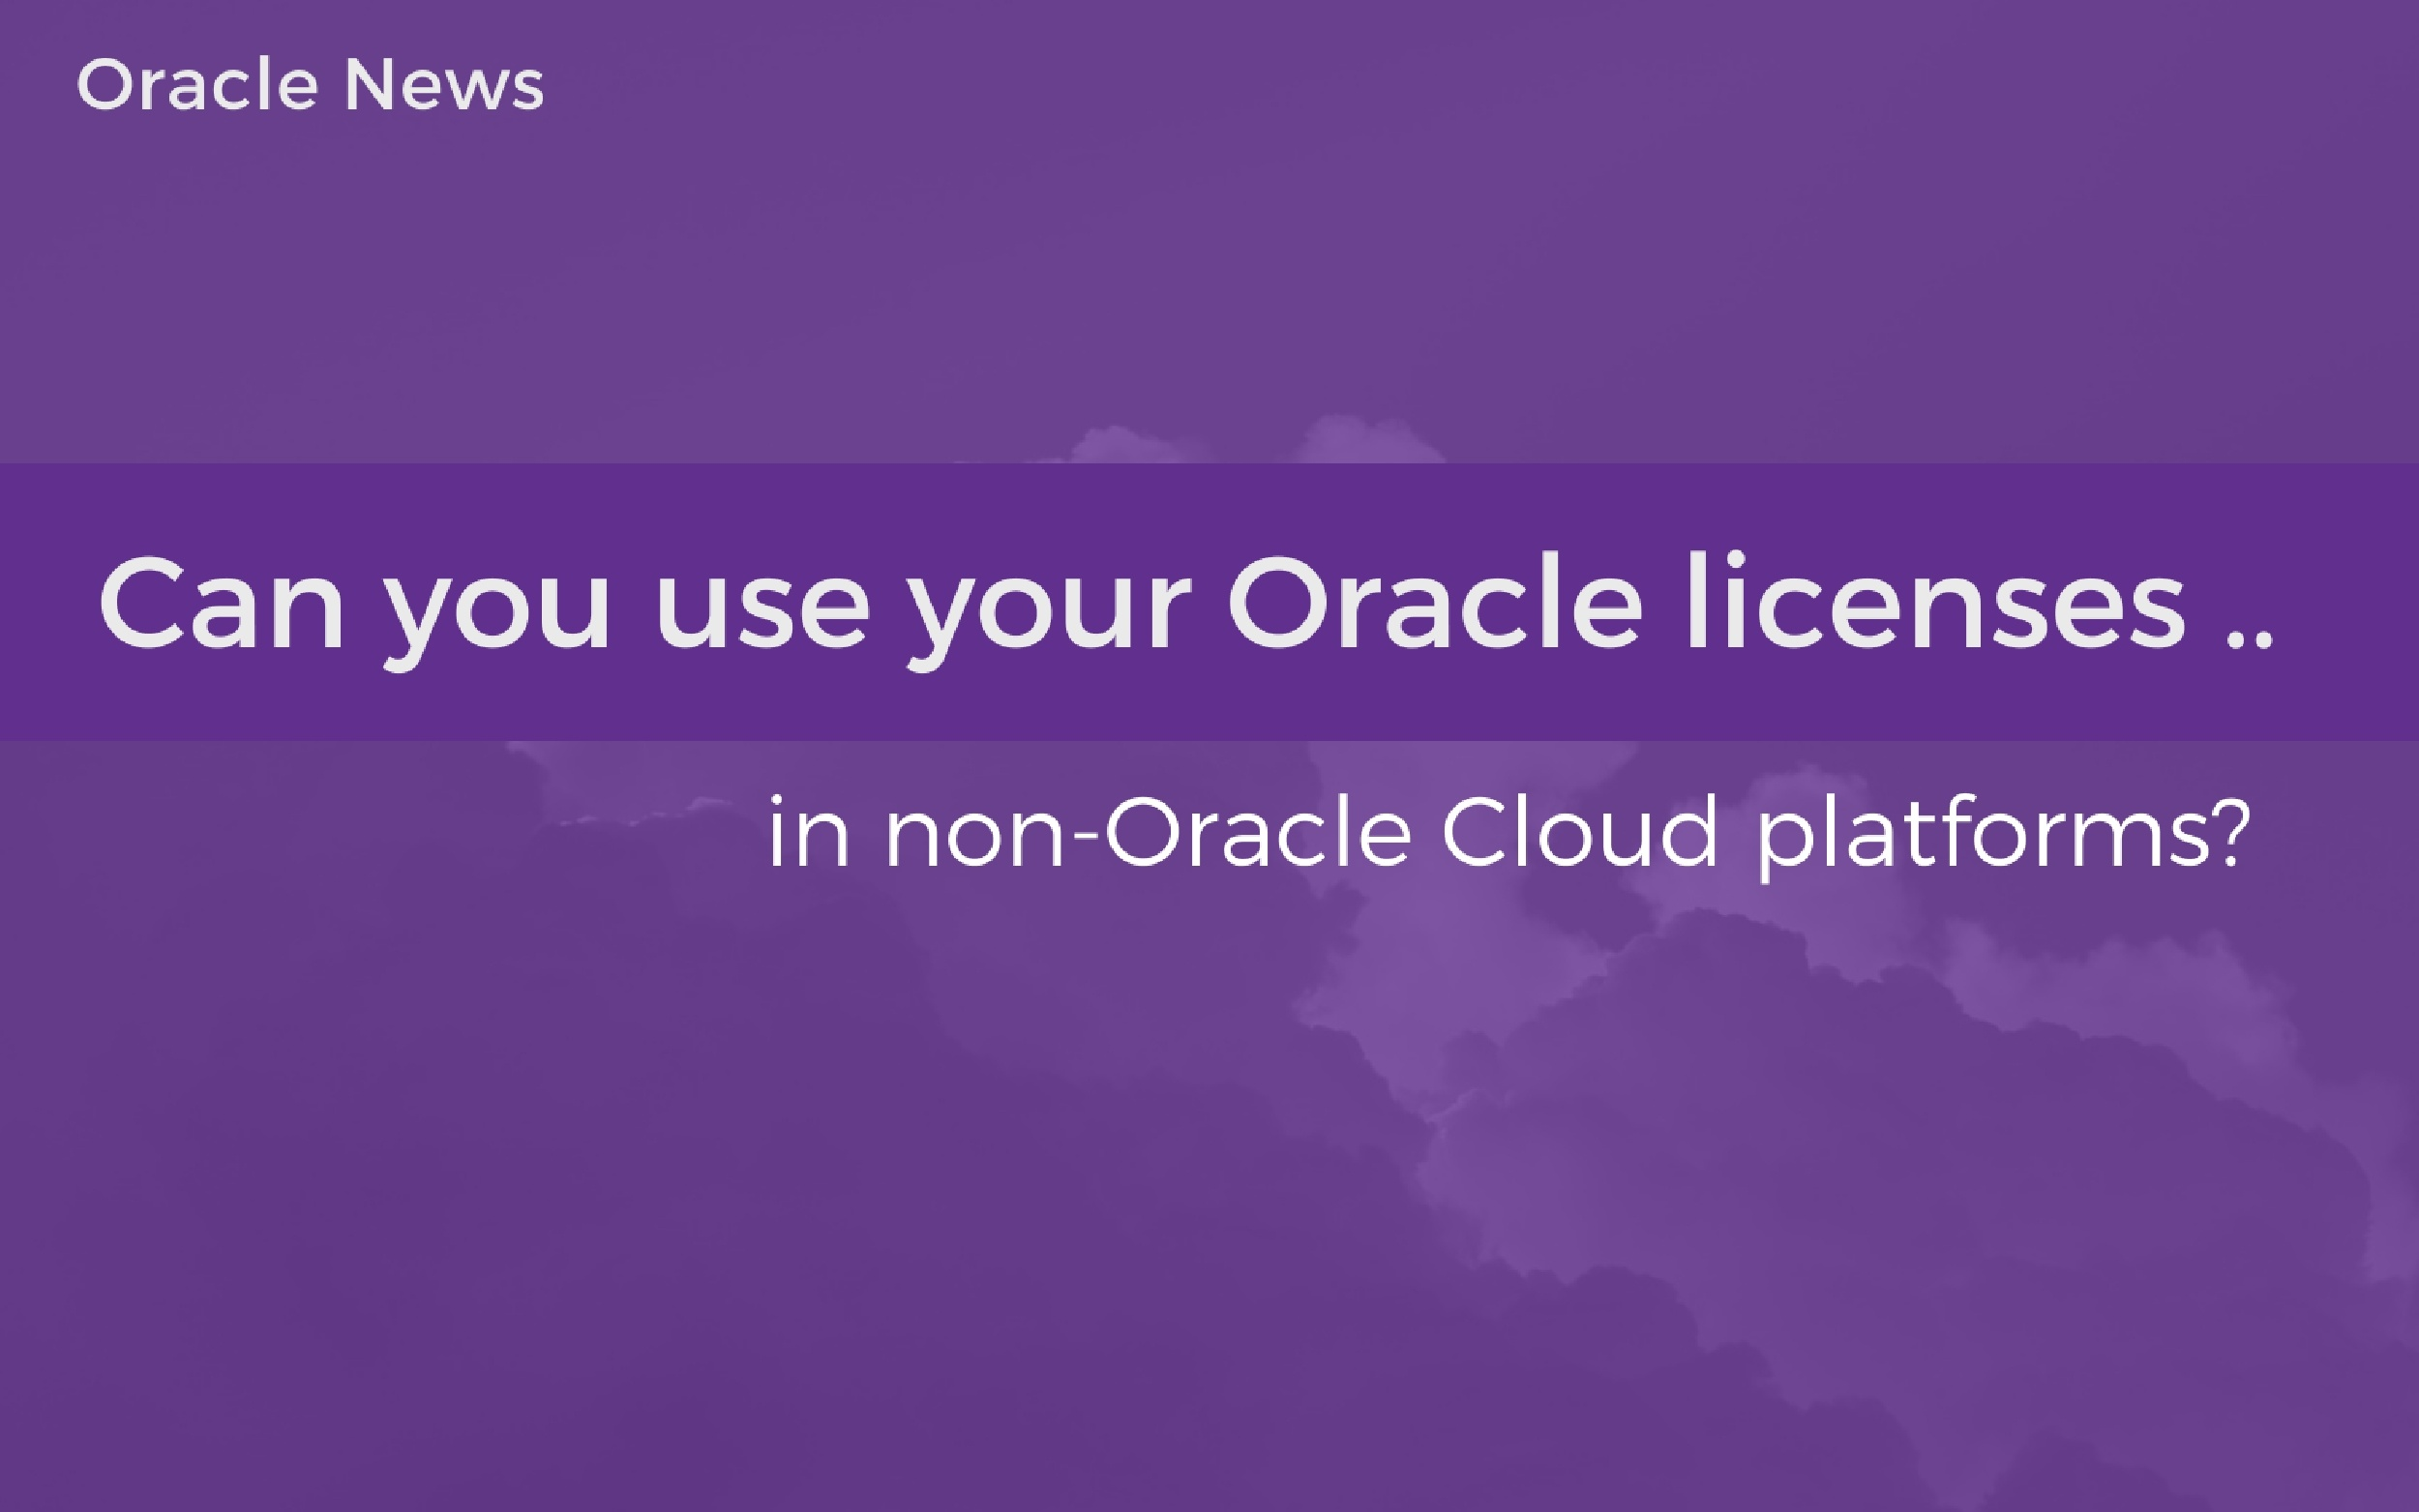 Can you use your Oracle licenses in non-Oracle Cloud platforms?